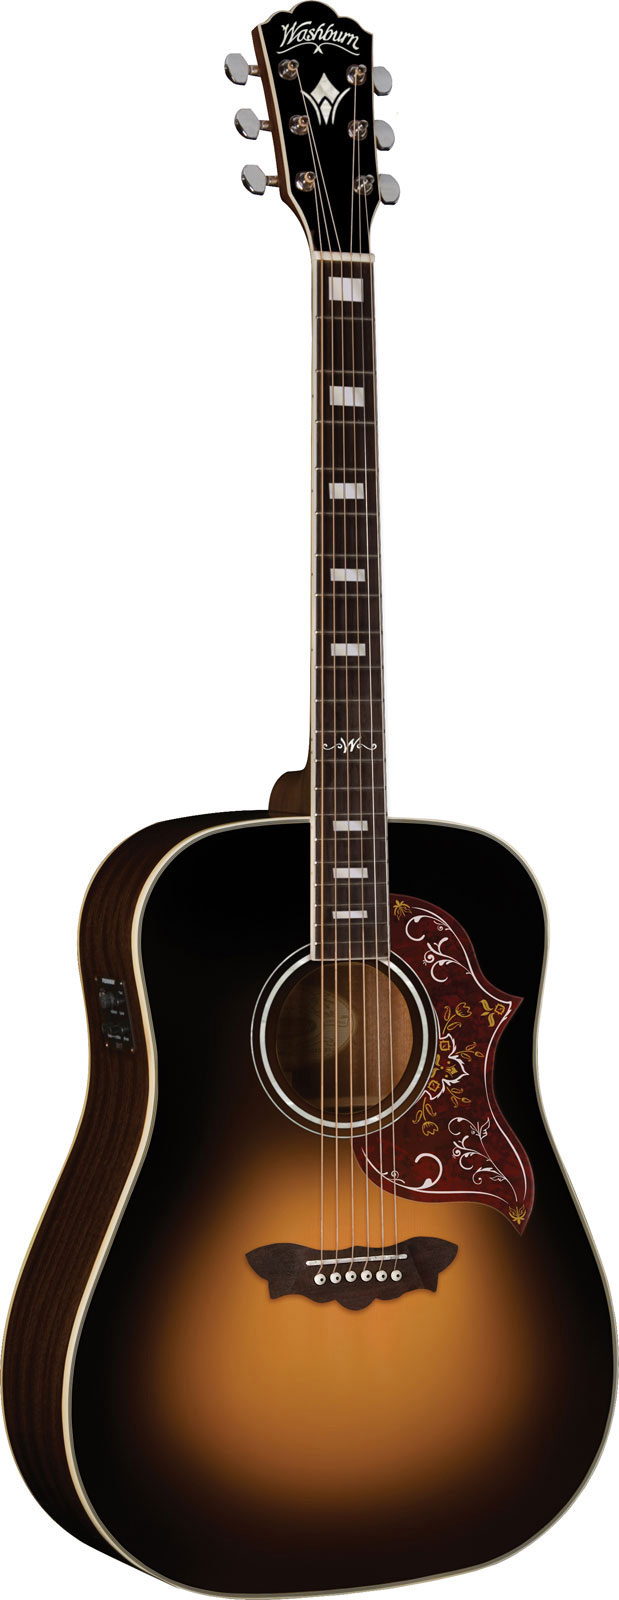 Washburn Wd220seatb Dreadnought Antique Tobacco Sunburst